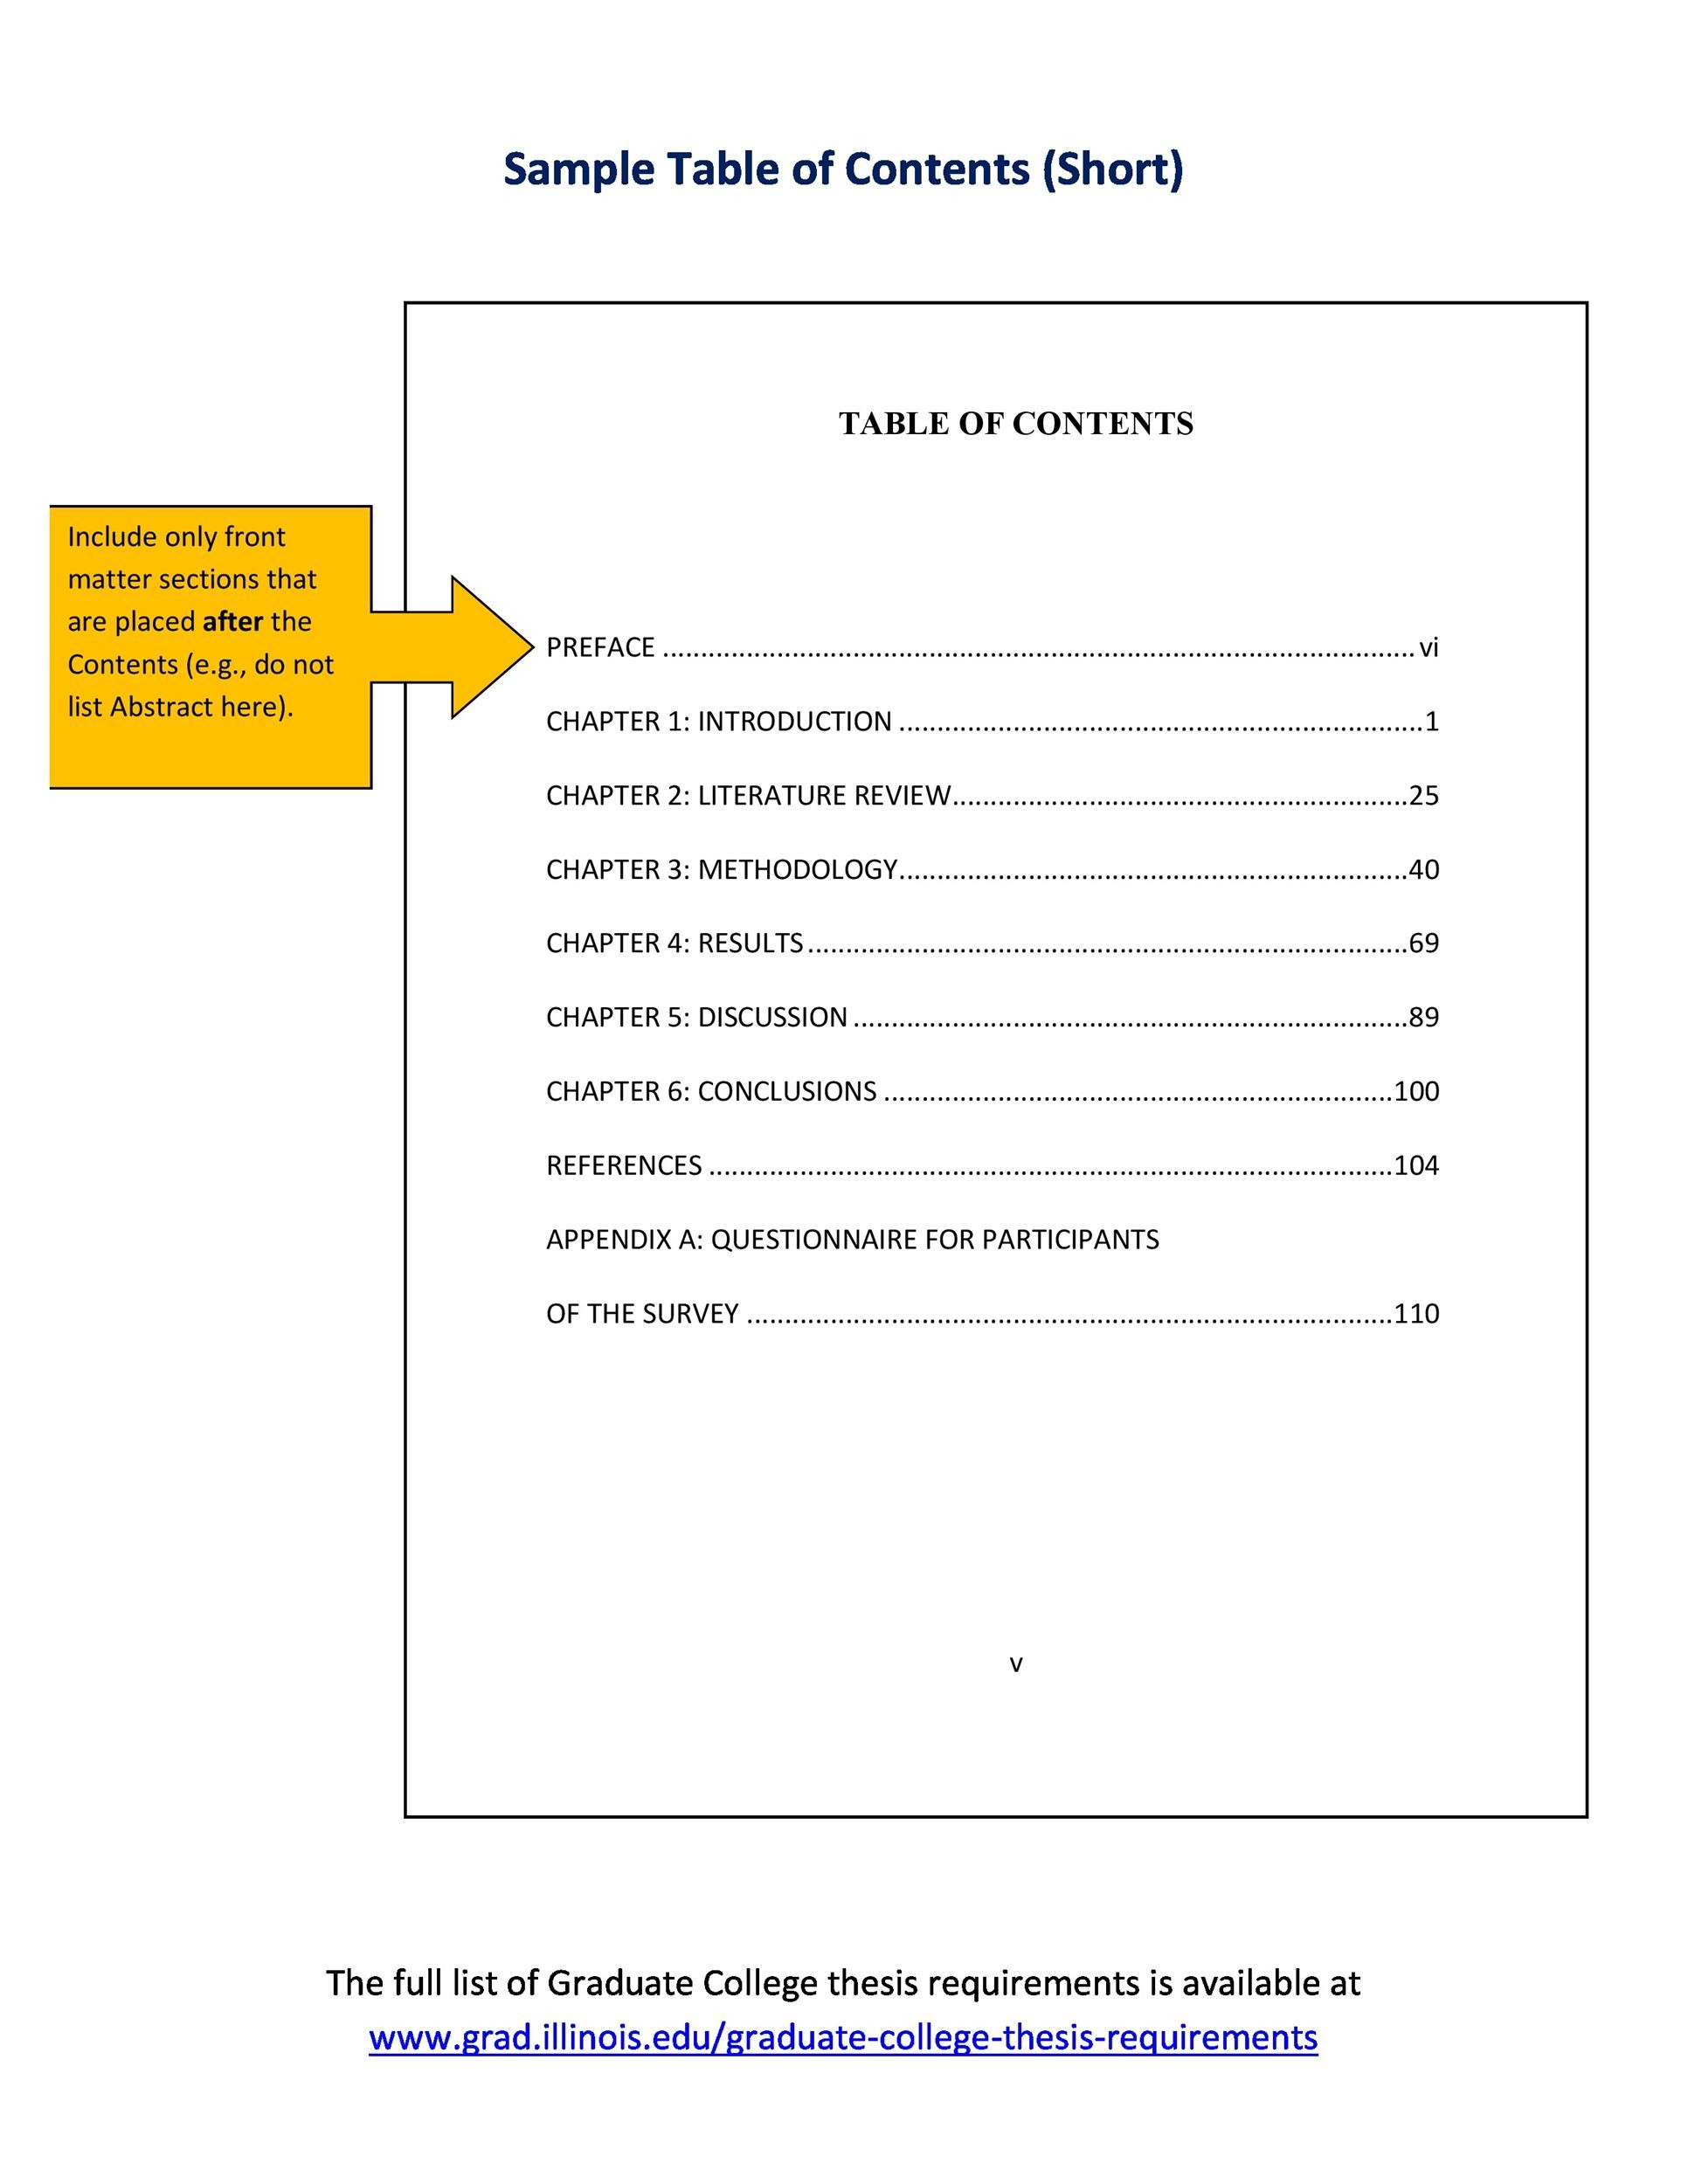 20 table of contents templates and examples template lab printable table of contents template pdf 05 pronofoot35fo Choice Image